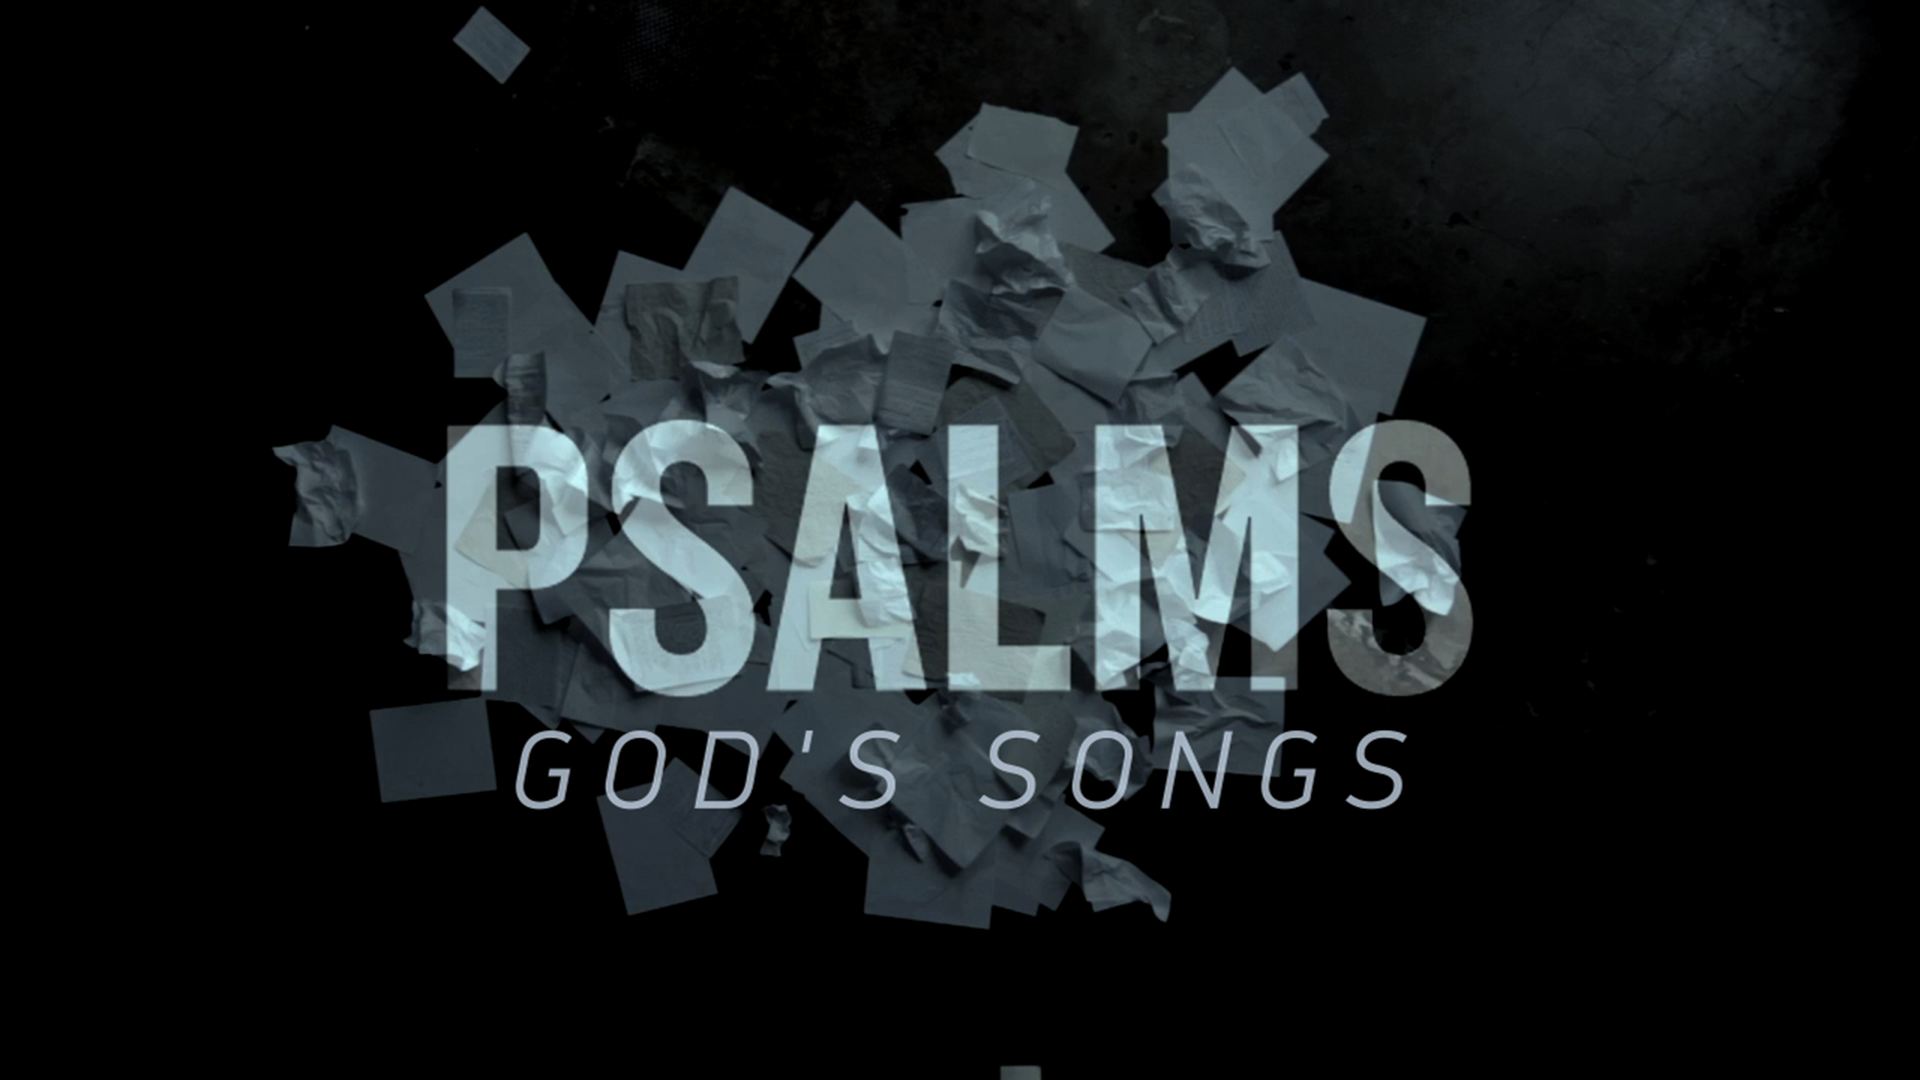 how to study the book of psalms